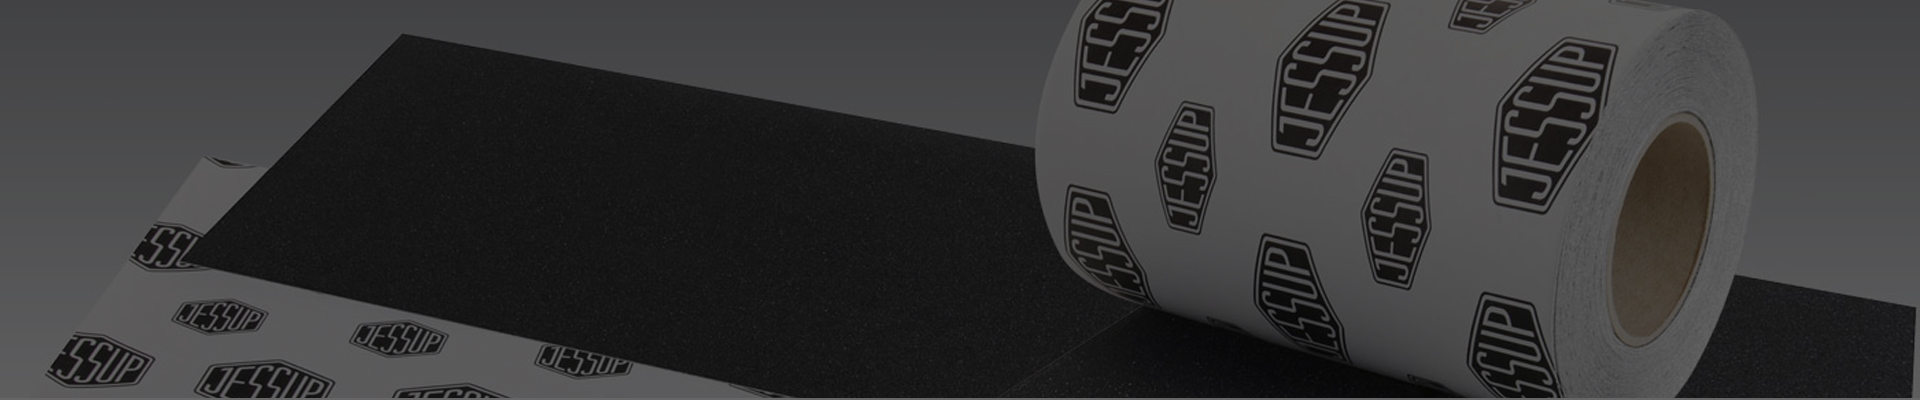 Grip Tape Skateboard su Xtreme-Skate.com | Acquista online!